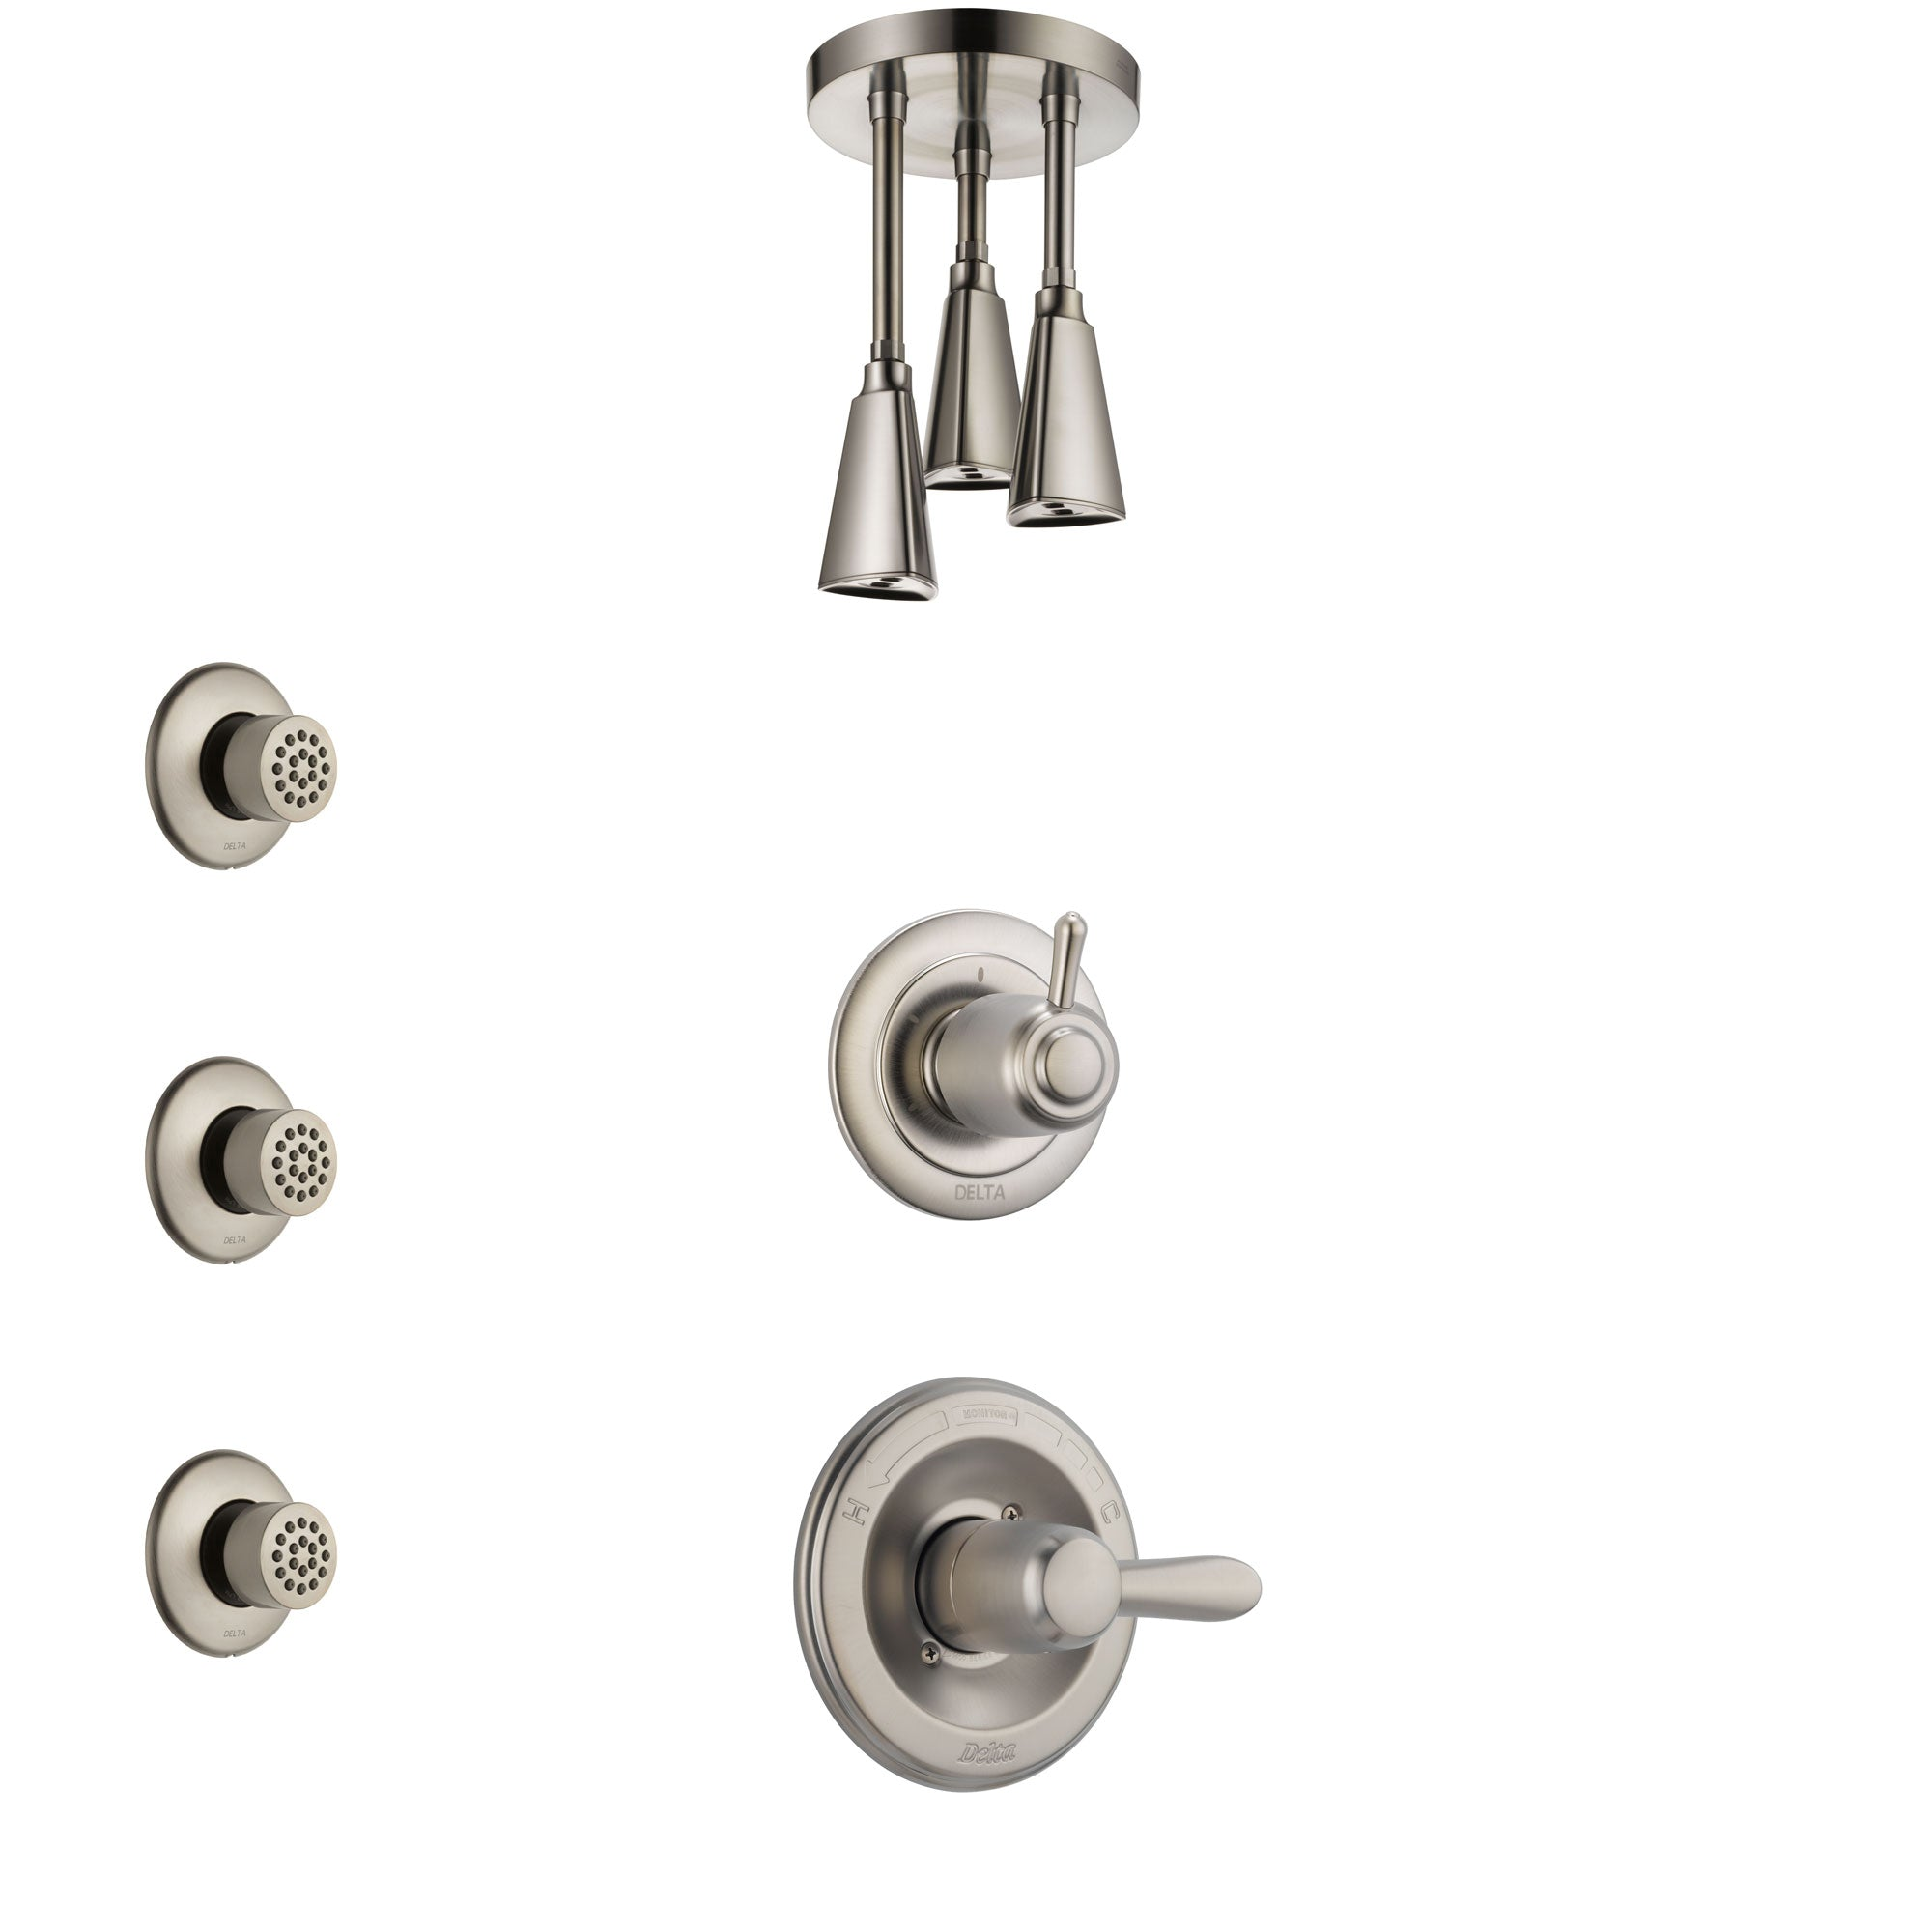 Delta Lahara Stainless Steel Finish Shower System with Control Handle, 3-Setting Diverter, Ceiling Mount Showerhead, and 3 Body Sprays SS1438SS8